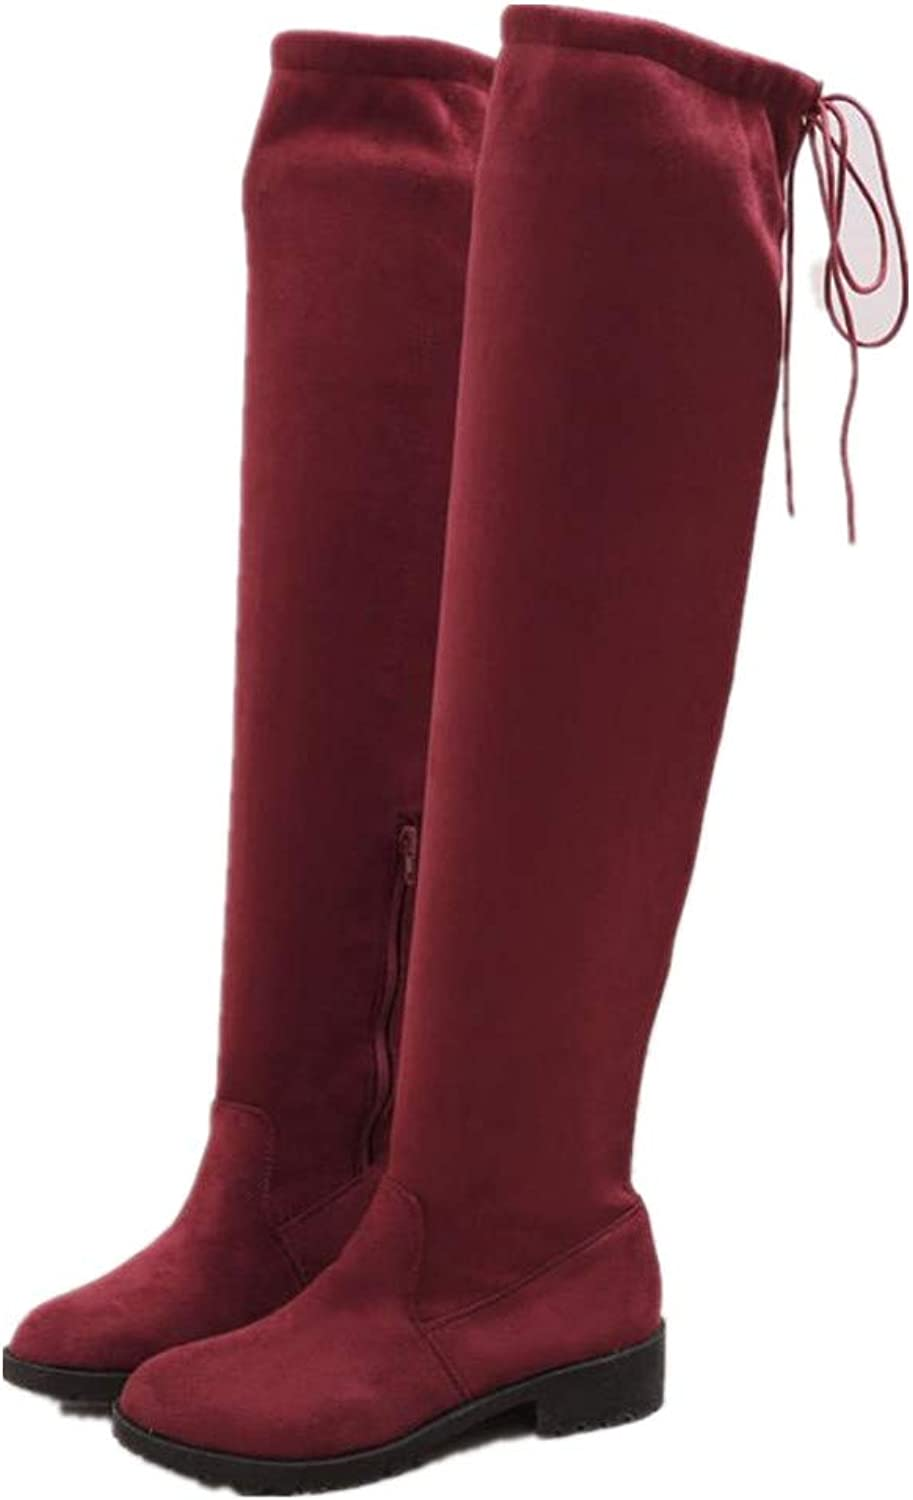 Cici shoes Womens Chunky Block Low Mid Heel Faux Suede Over The Knee Boots Stretch Leg Calf shoes